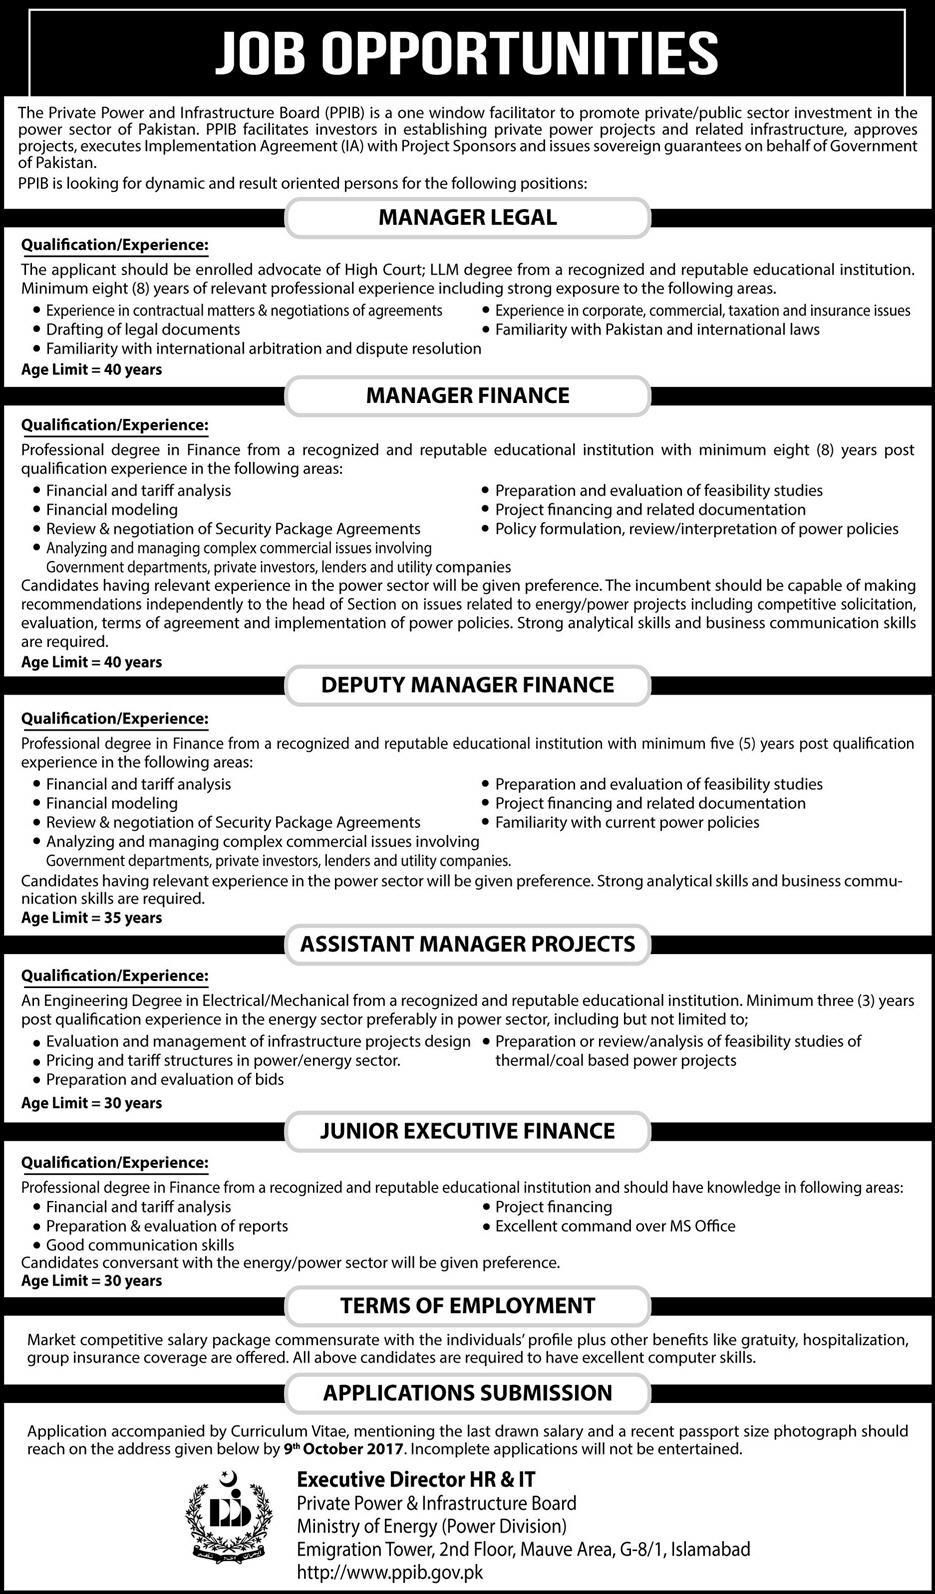 Ministry Of Planning Development And Reforms Islamabad Jobs  Jobs